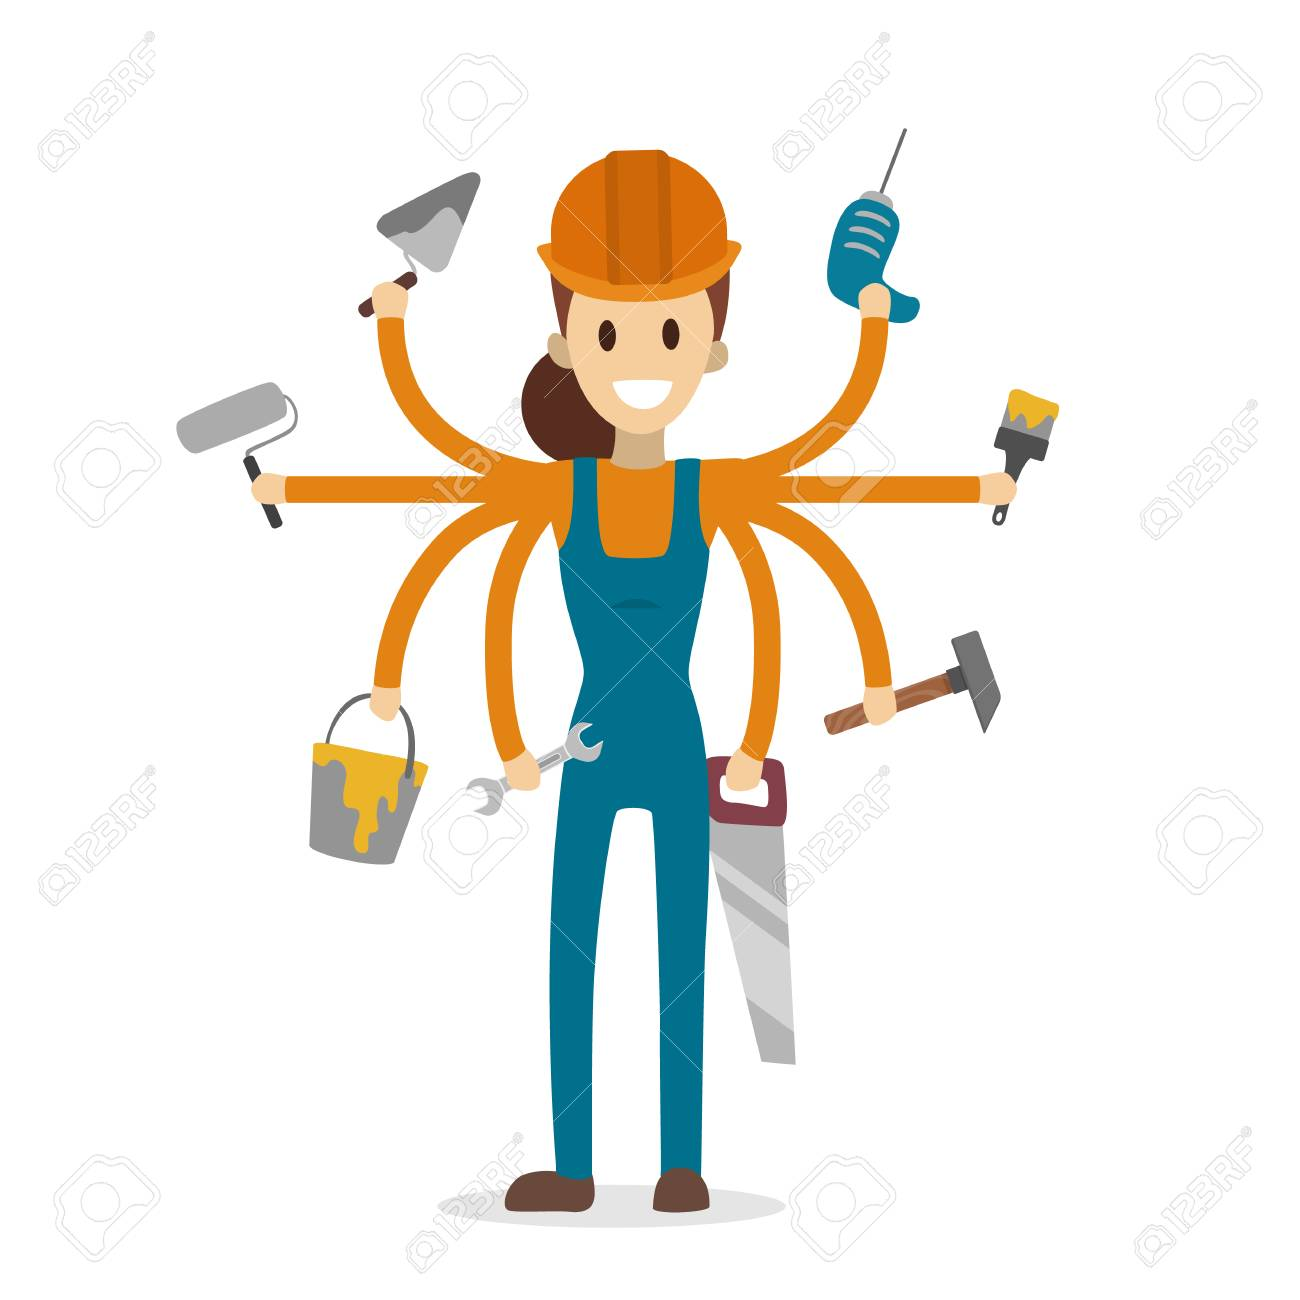 Multitasking Construction Worker With Six Hands On White. Royalty Free  Cliparts, Vectors, And Stock Illustration. Image 94888655.